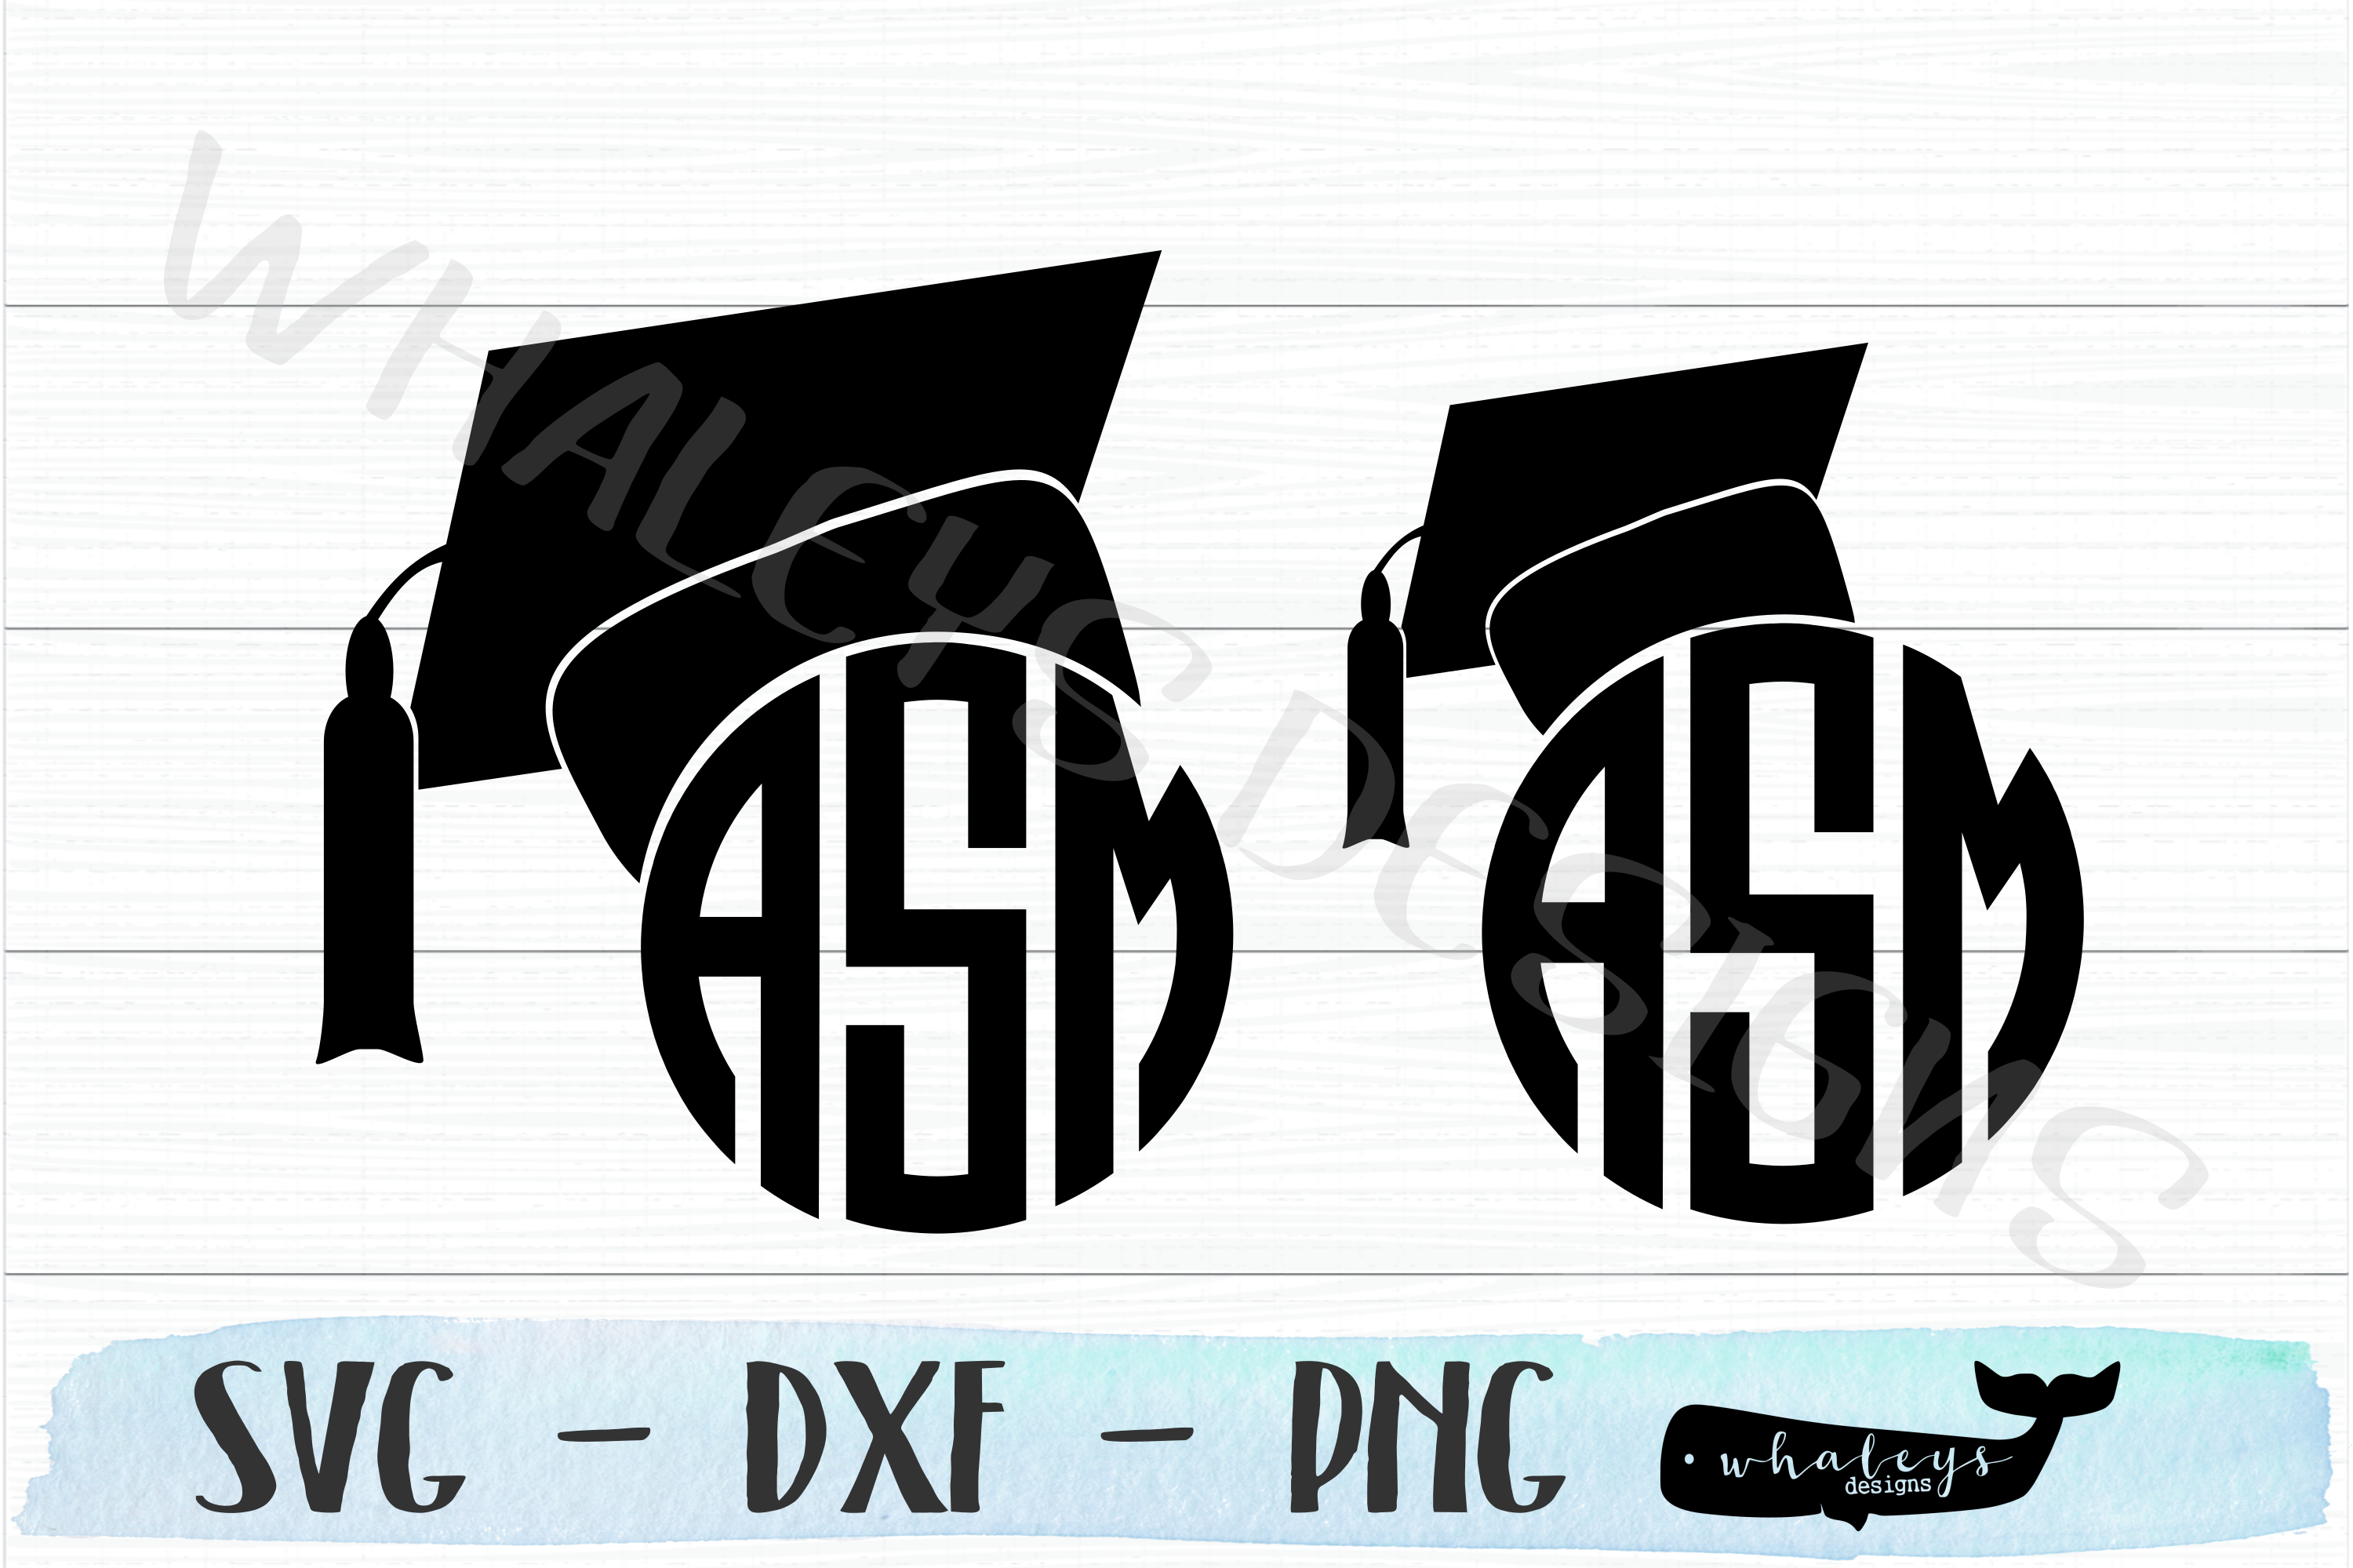 Download Free Graduation Cap Monogram Senior Graphic By Whaleysdesigns for Cricut Explore, Silhouette and other cutting machines.